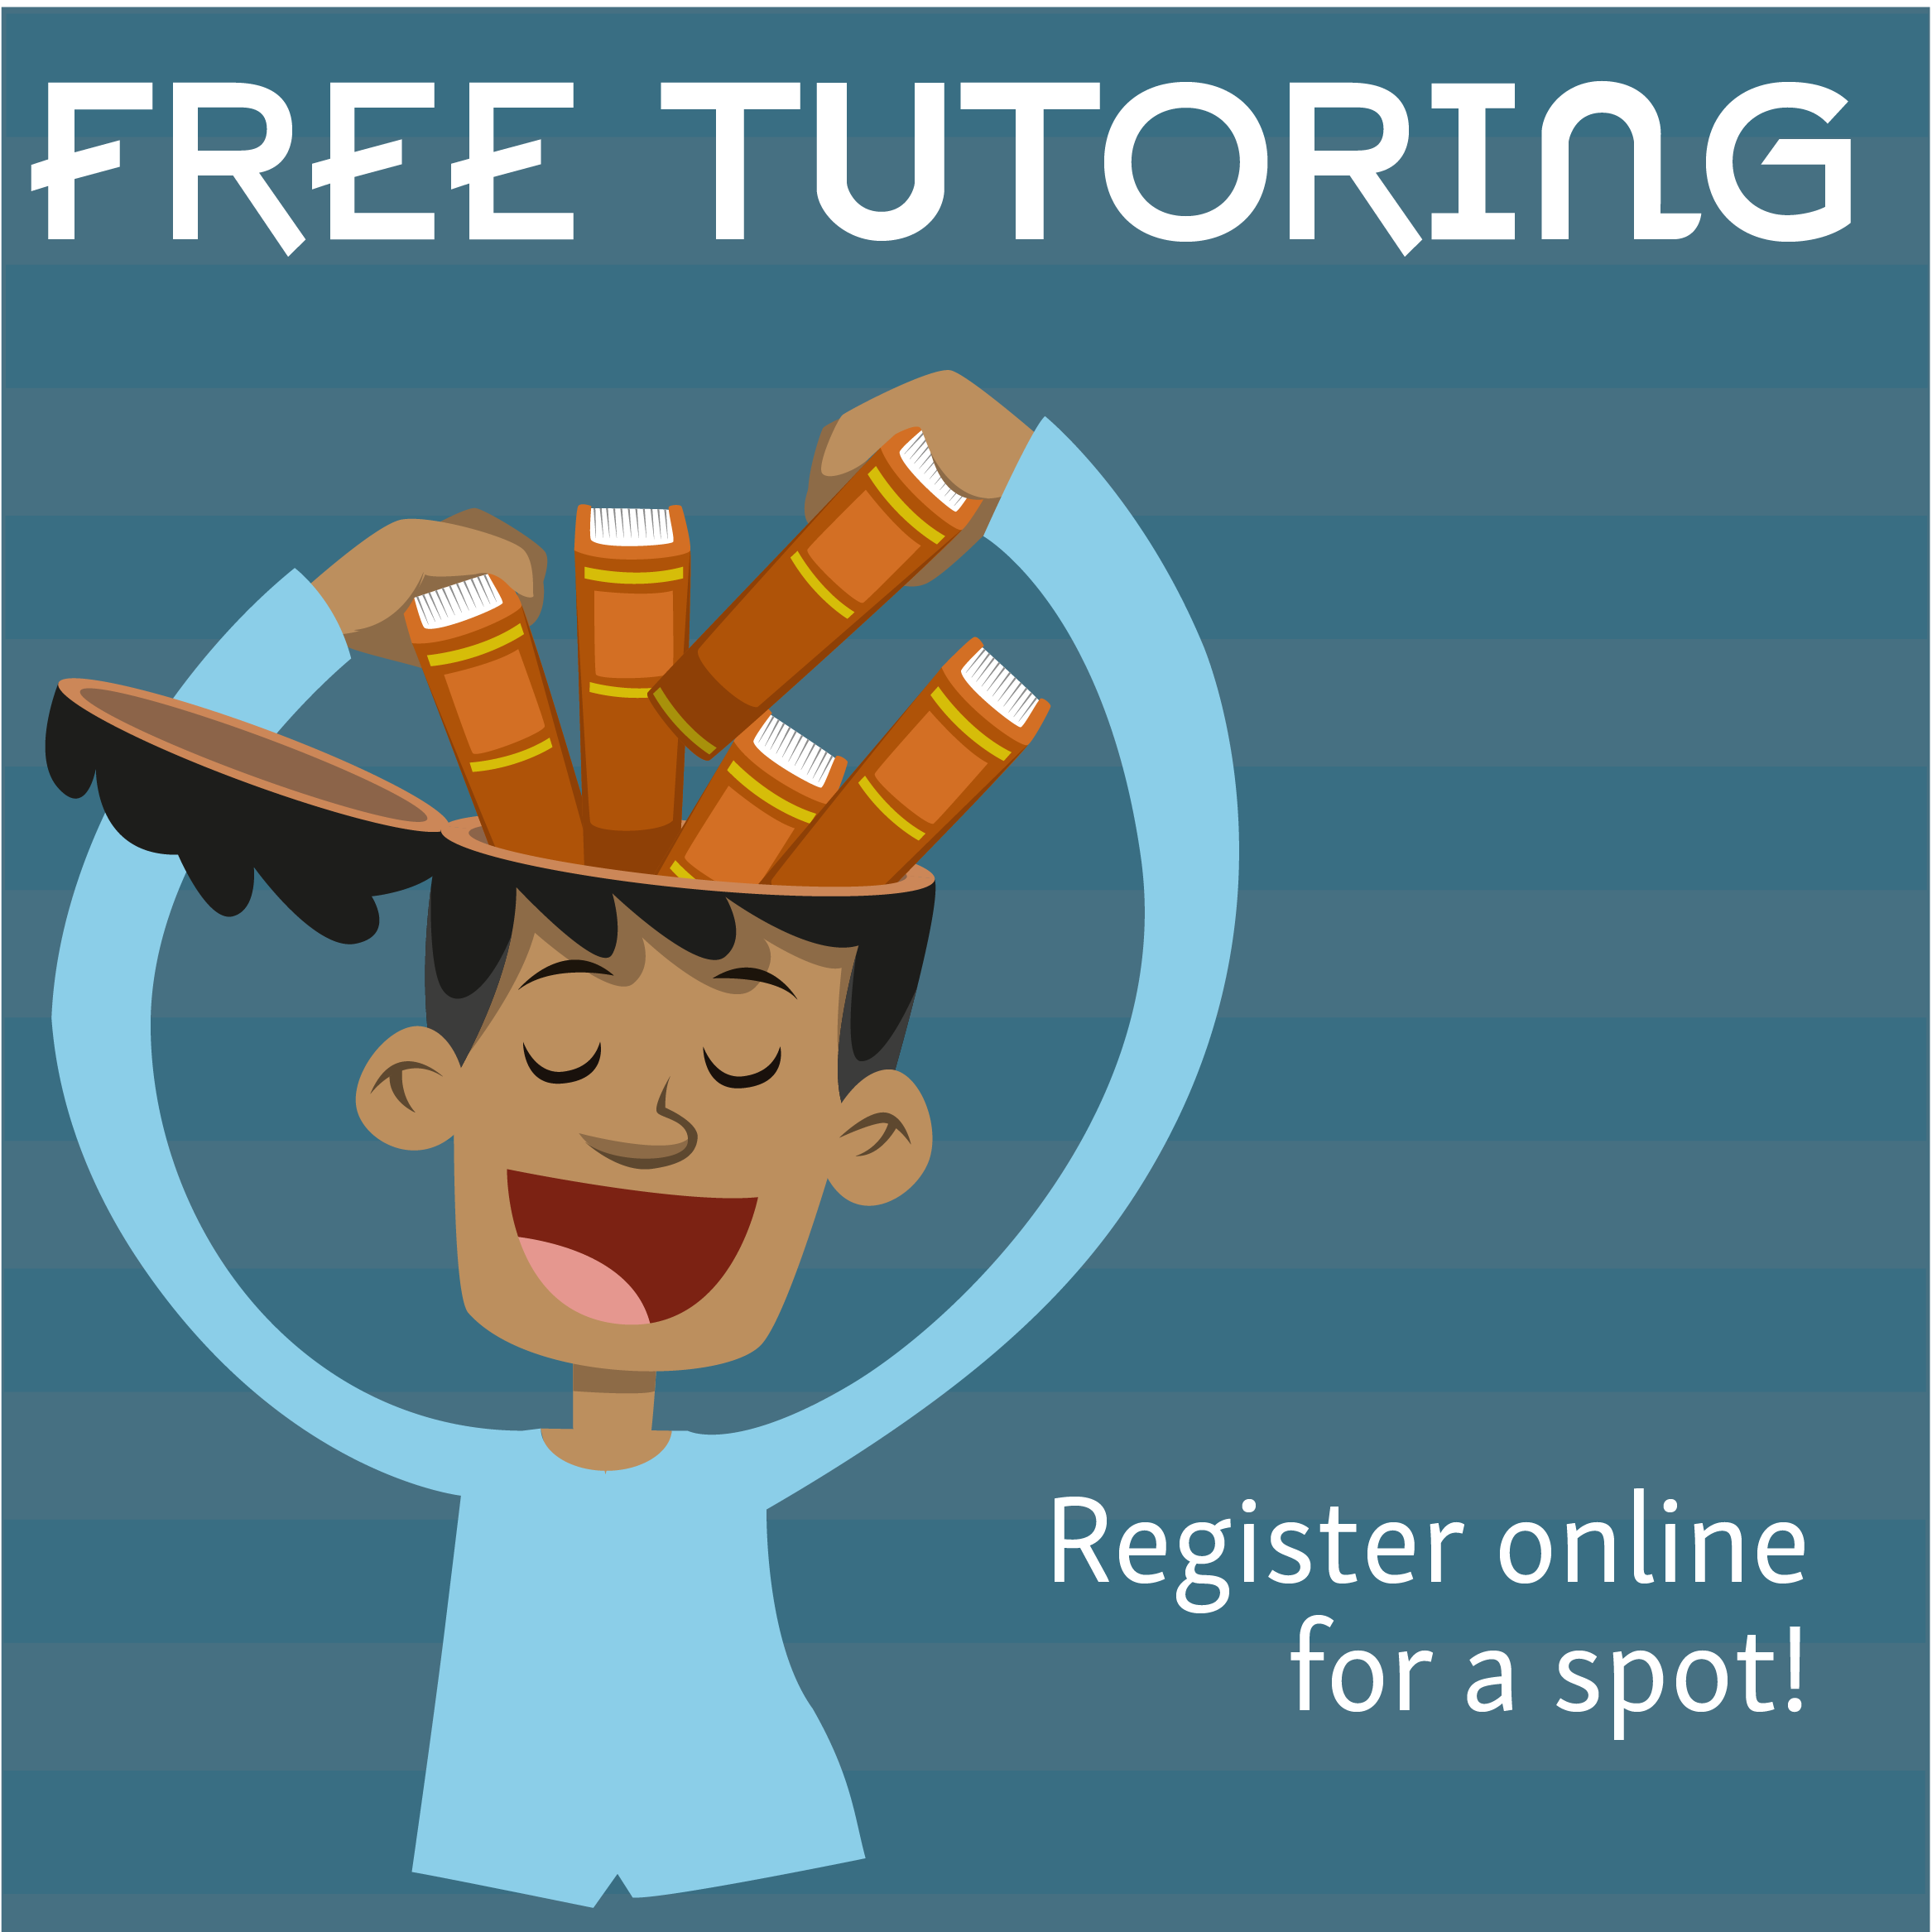 Free Tutoring - Waco Central Library